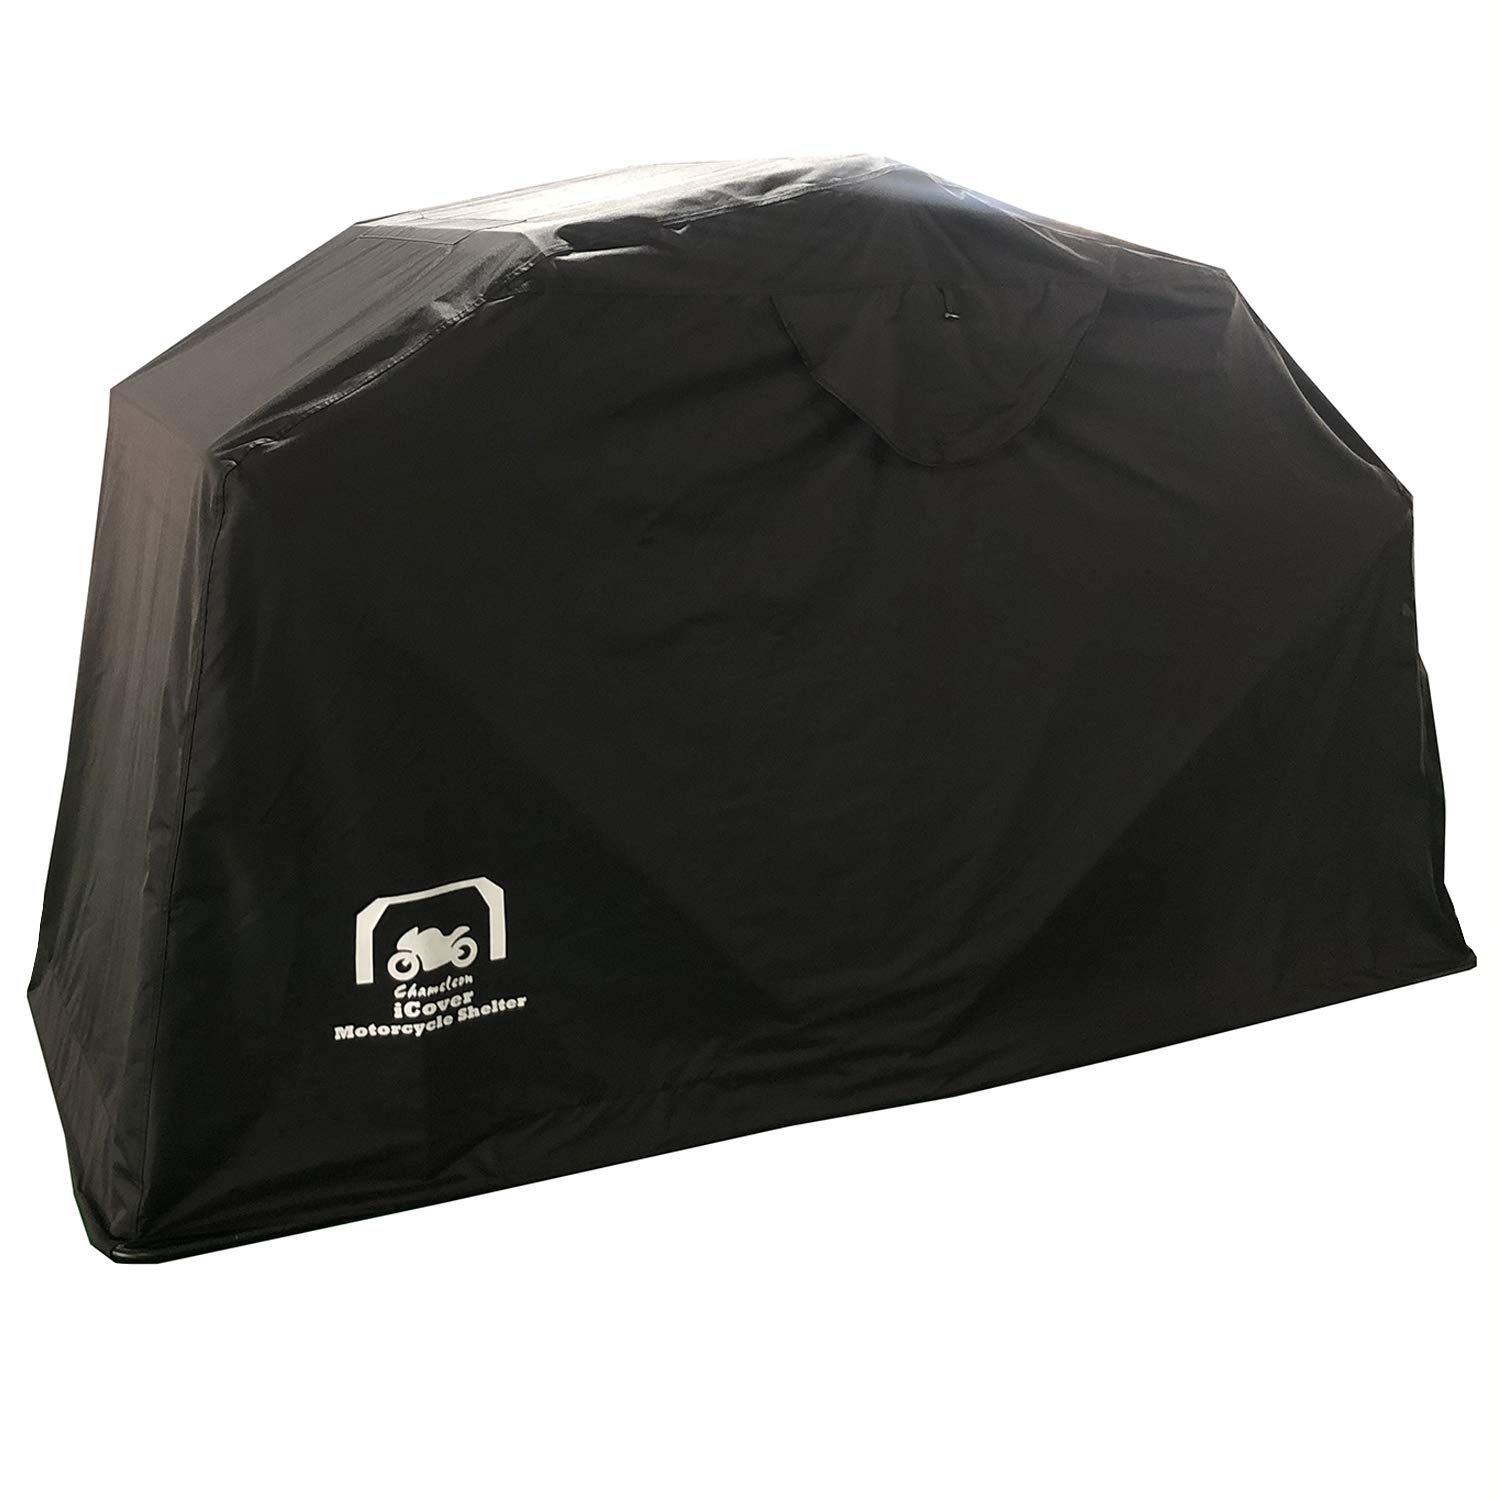 270cm x 105cm x 155cm ICover Motorcycle Bike Garage Shelter Heavy Duty 600D Oxford 100/% Waterproof Material 2 sizes